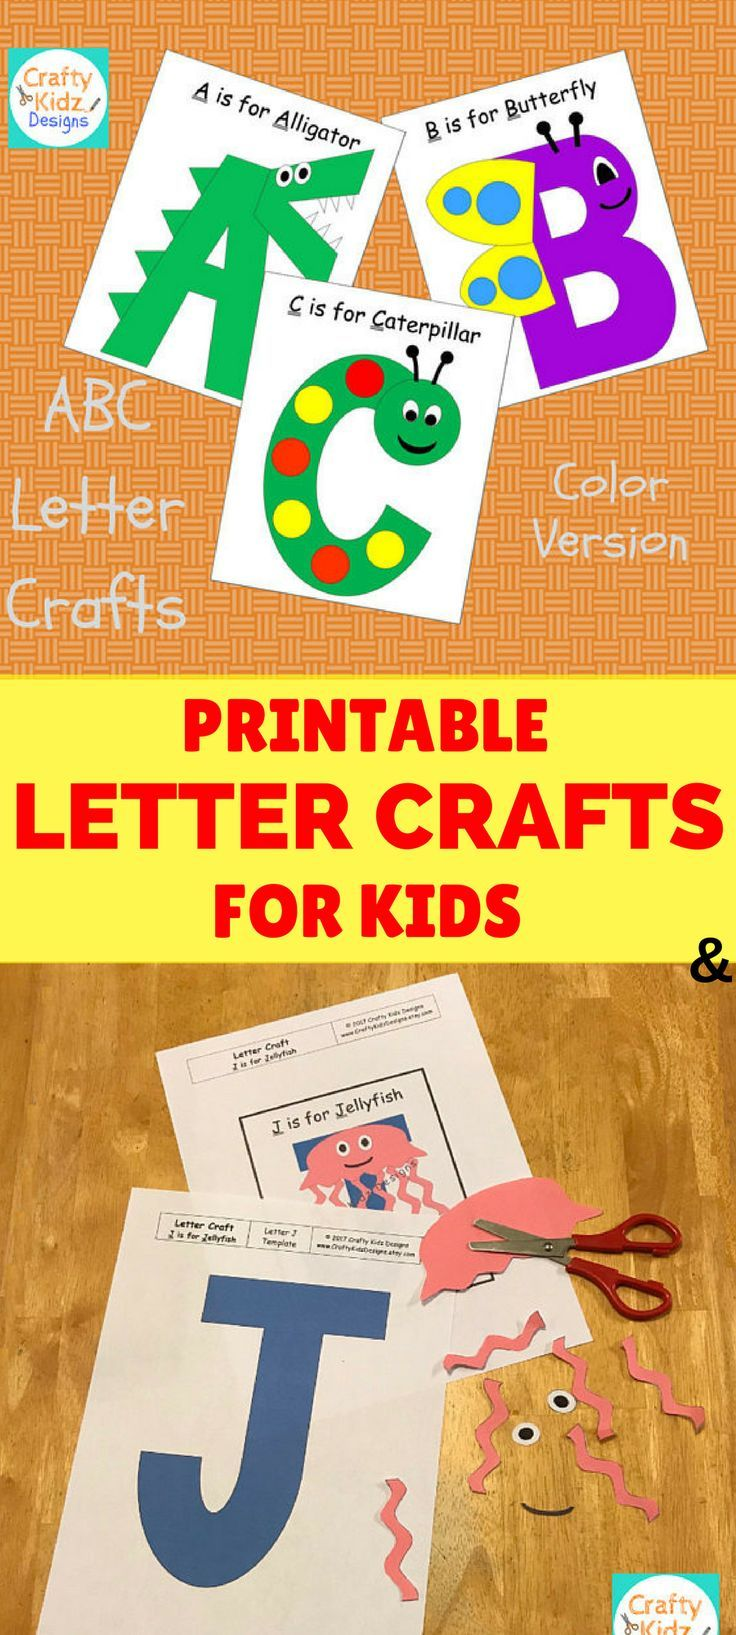 Looking for some simple learning crafts for kids? These printable letter crafts are fun and easy! Perfect for young children to learn and have fun with crafts! #ad | kids craft | craft time | craft kit | printable craft | kid activities | preschool | preschool activities | homeschool | ABC activities | letter activities |